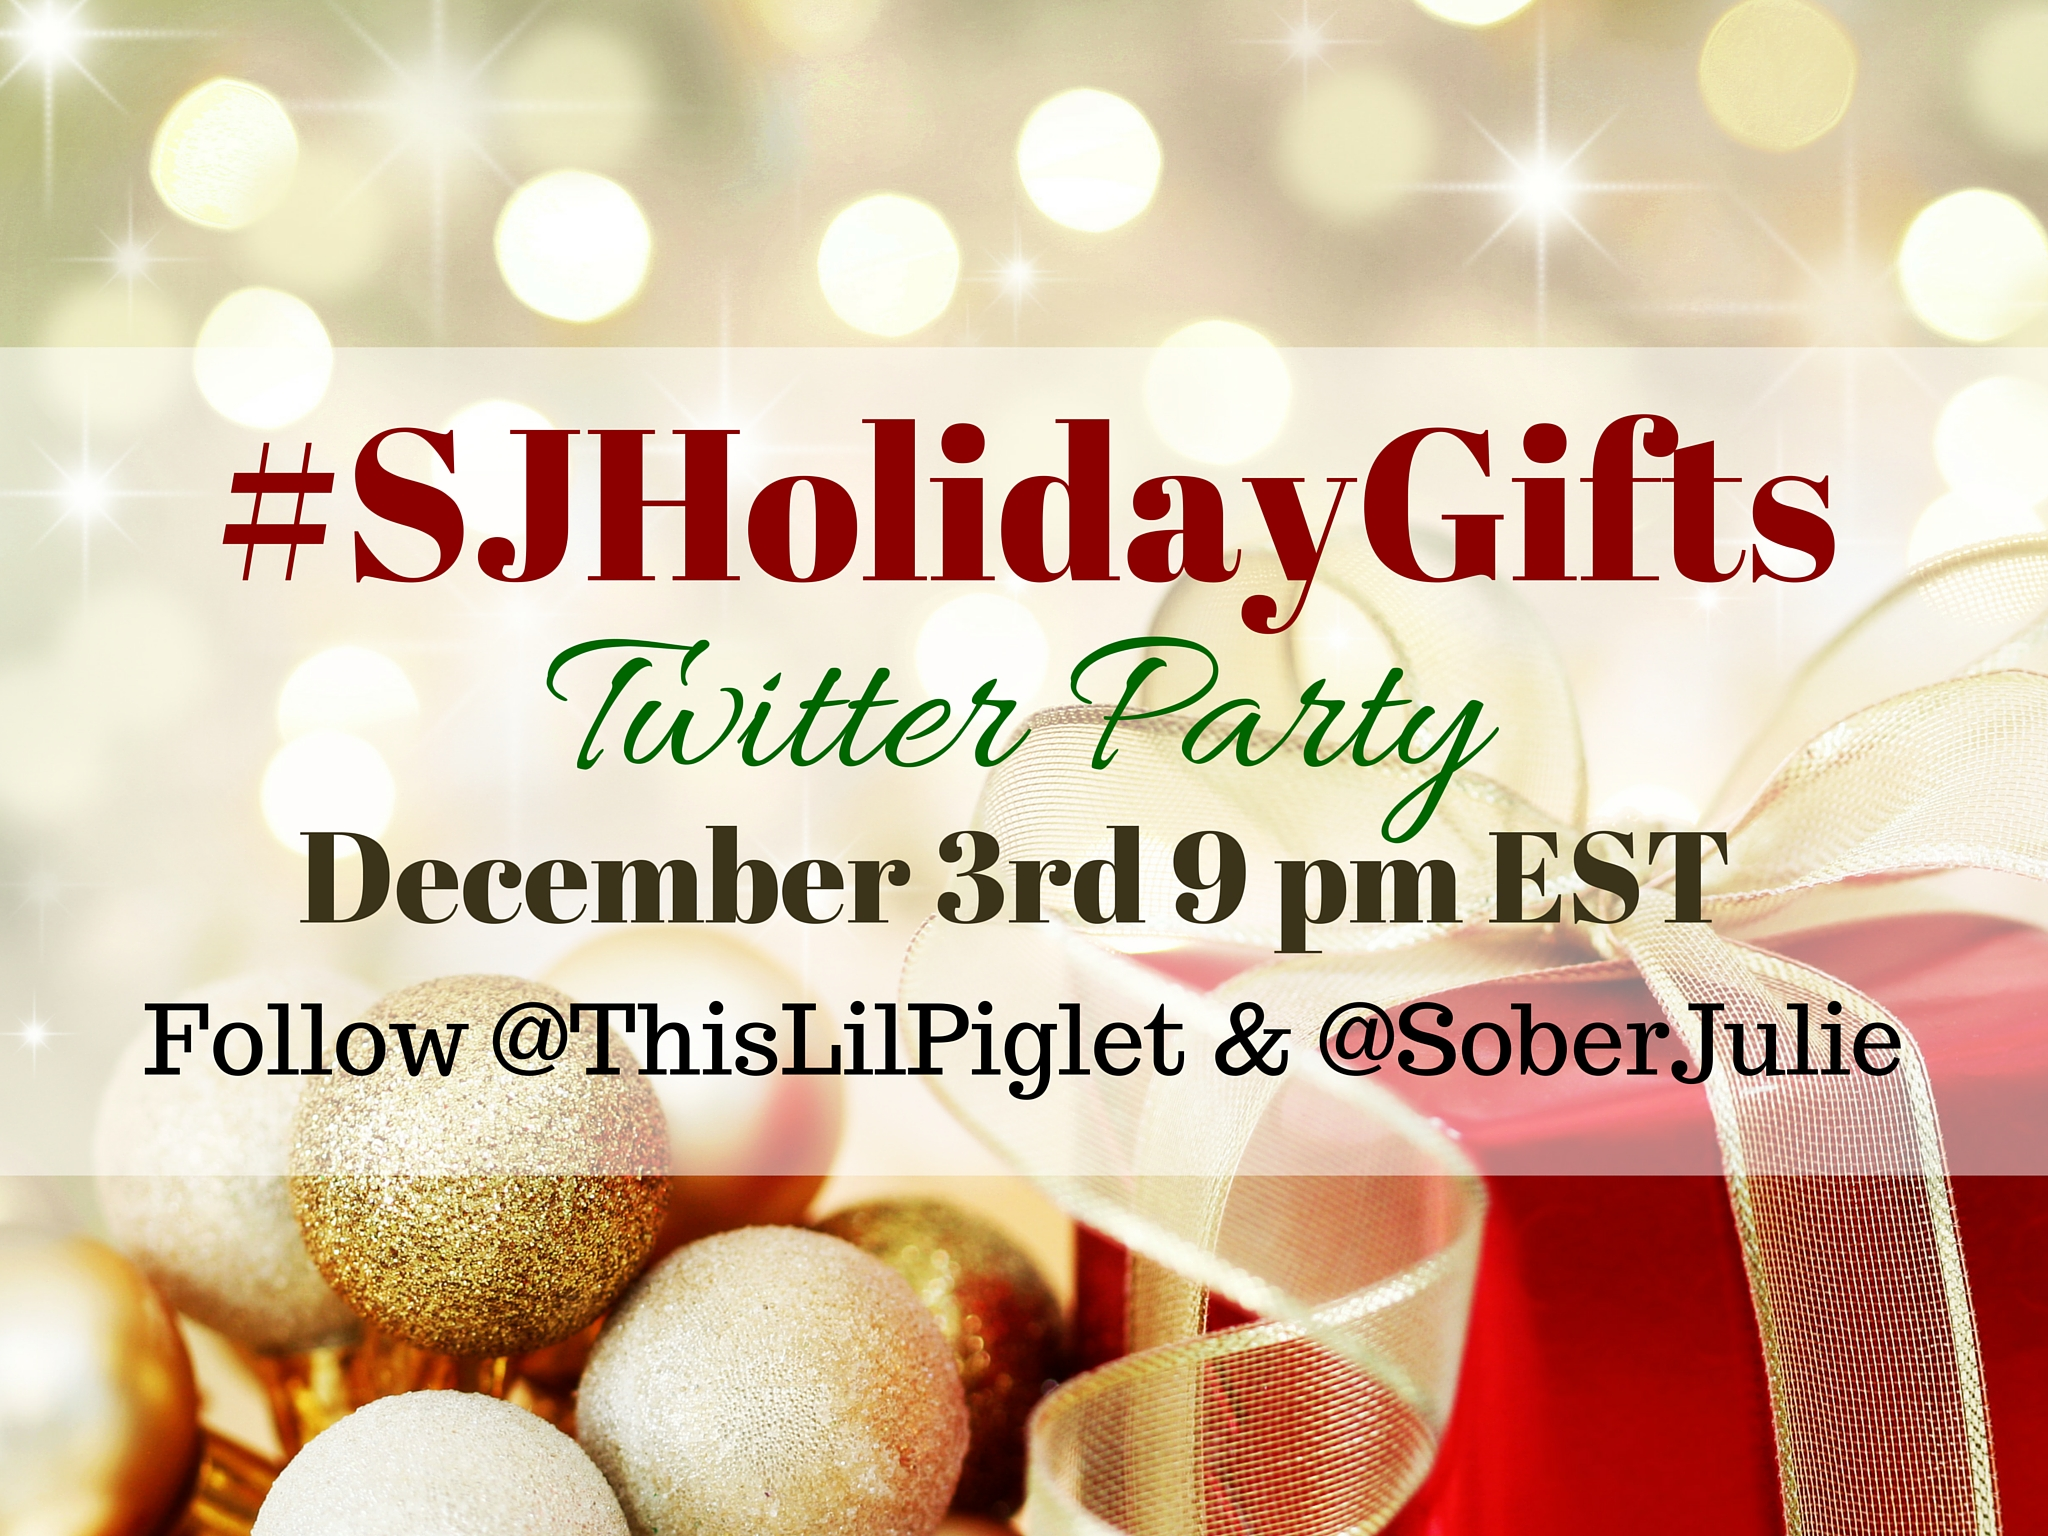 #SJHolidayGifts 2015 Twitter Party